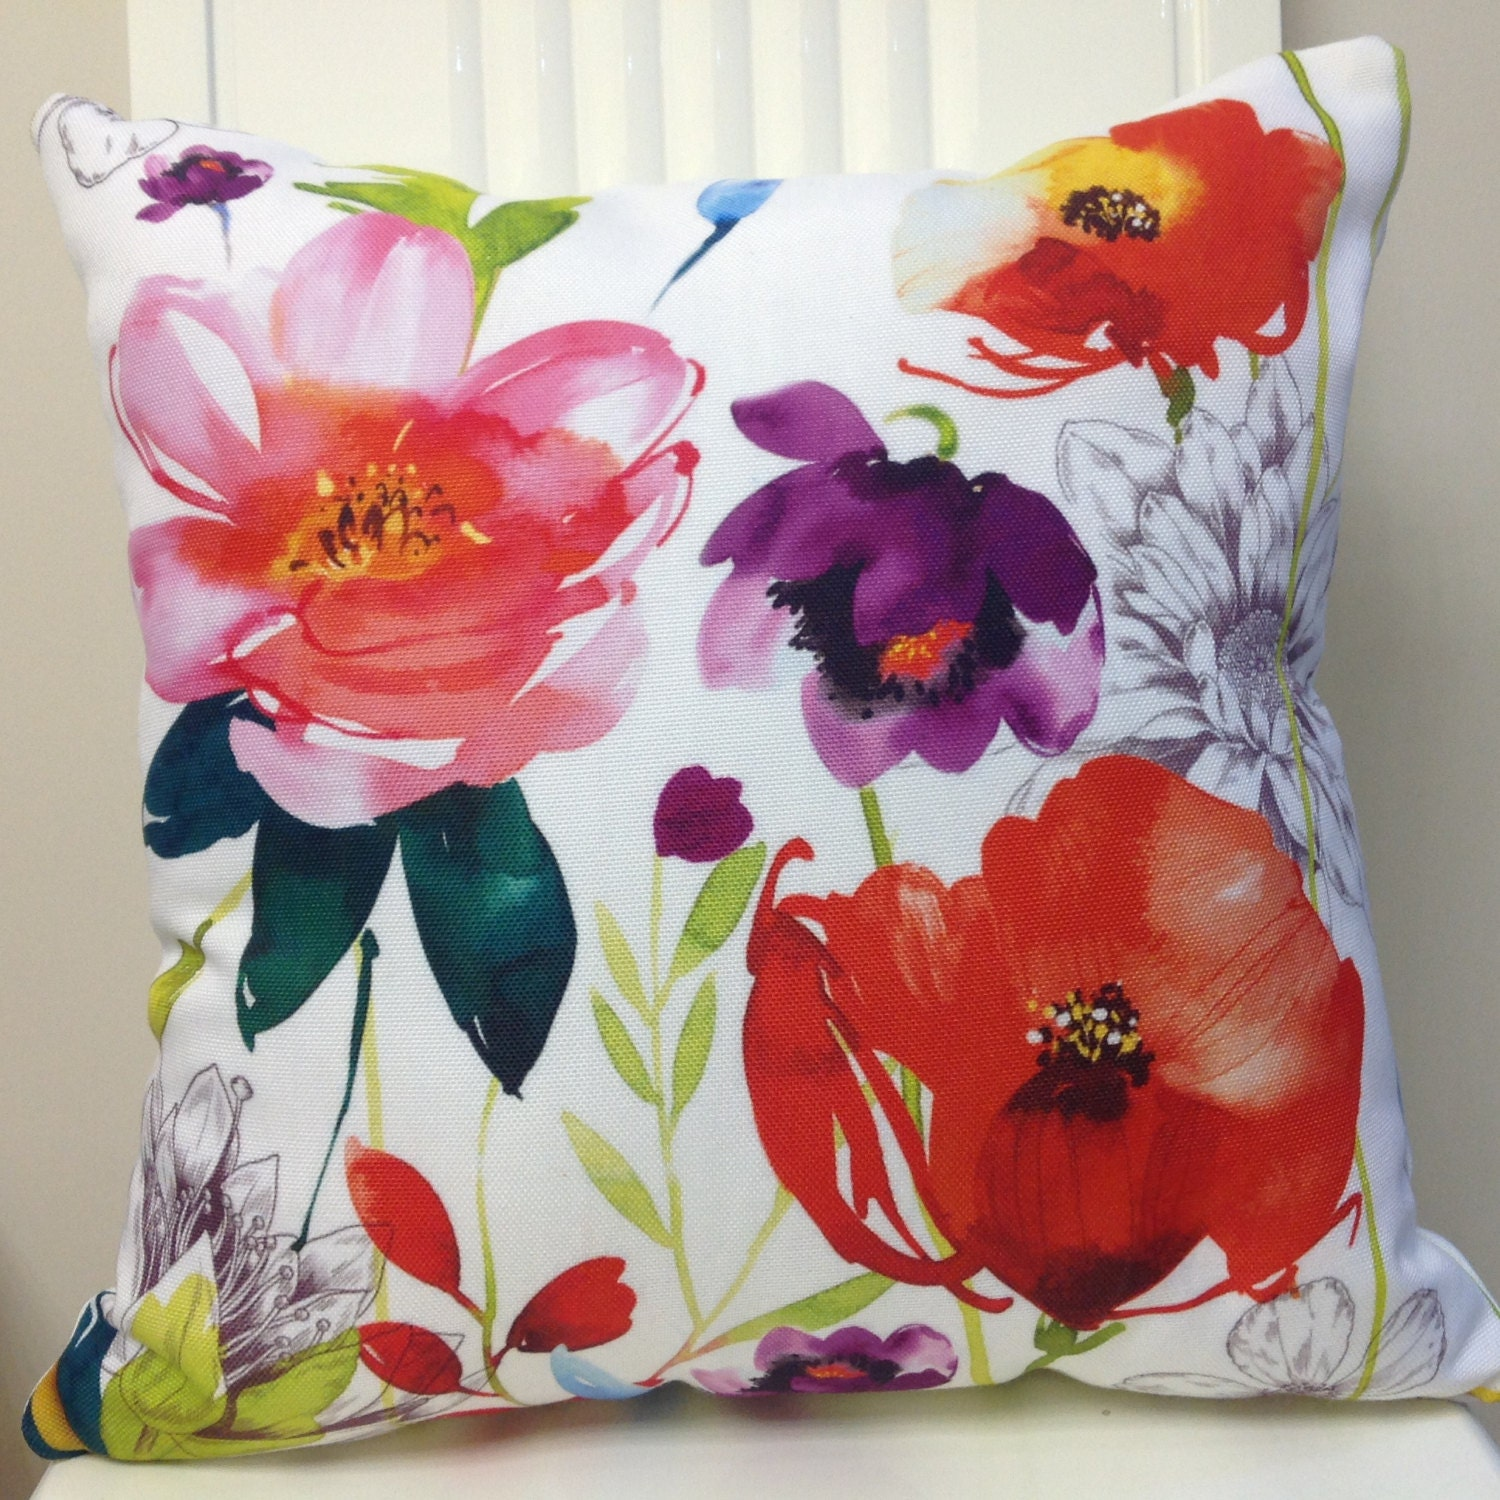 Decorative Pillows Flowers : PILLOWS, PILLOW COVERS, WATERCOLOR FLORAL PILLOW COVER, DECORATIVE THROW PILLOWS, THROW PILLOWS ...